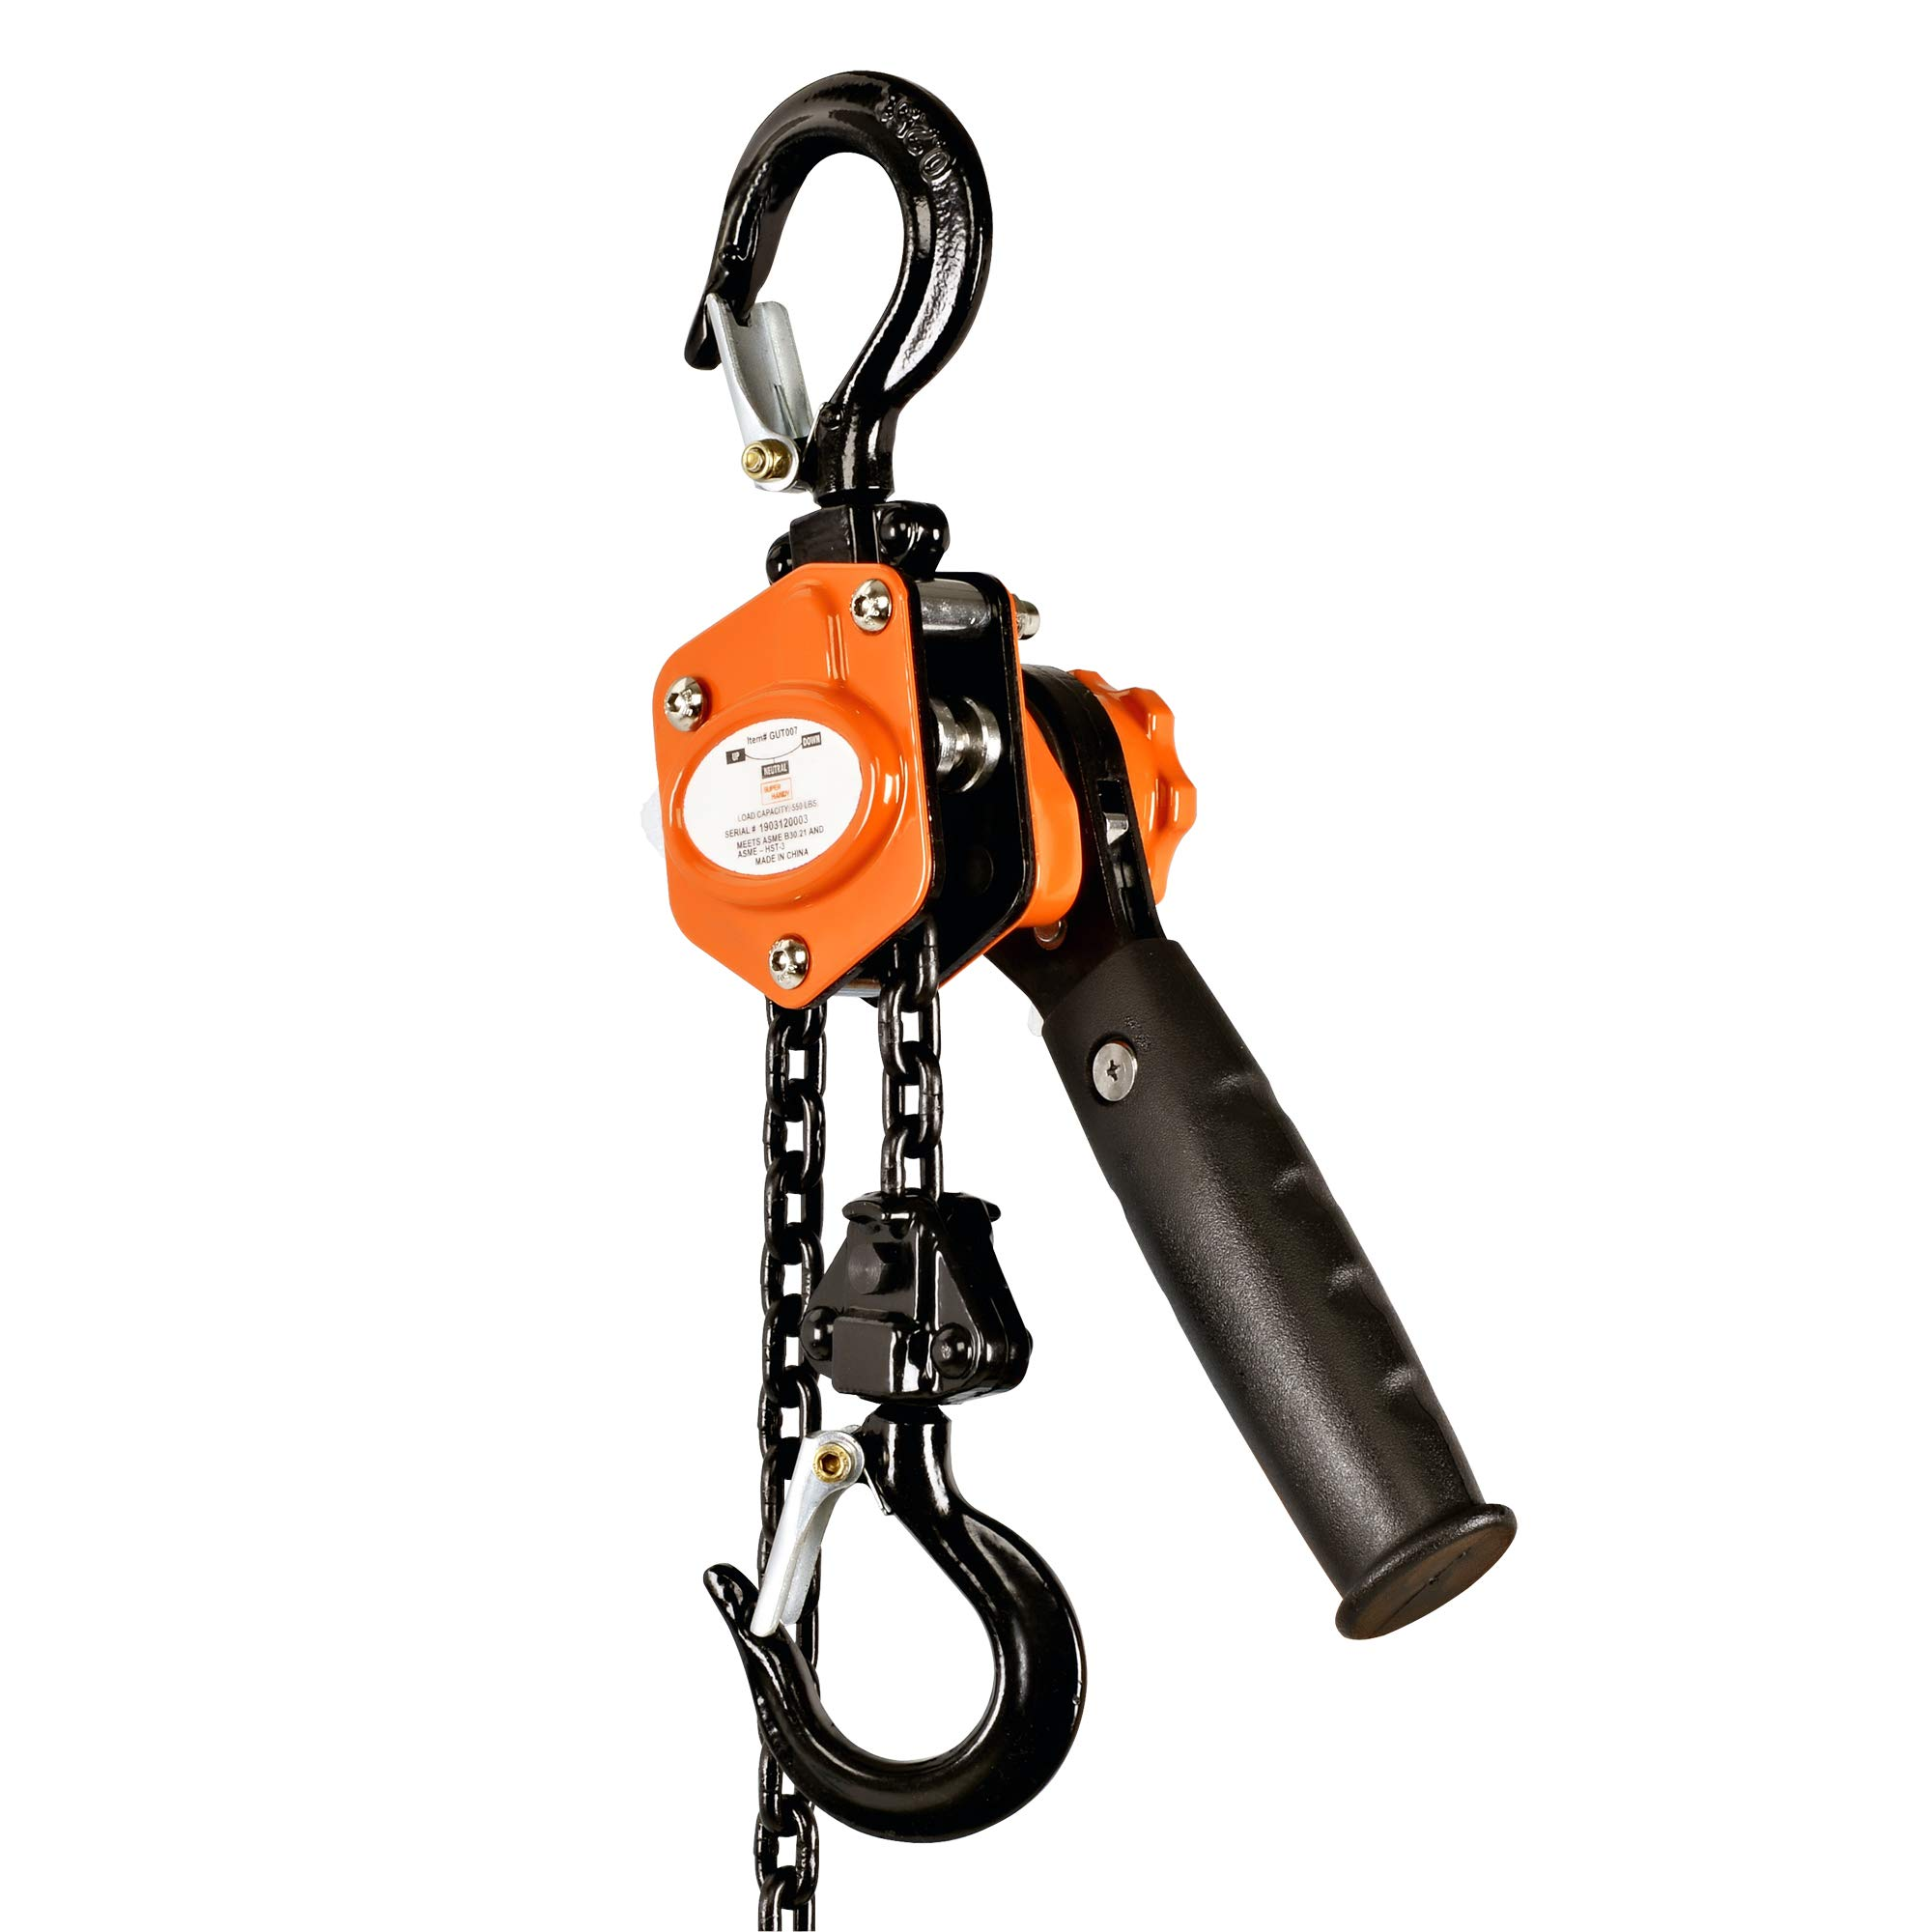 SuperHandy Mini Lever Hoist Come Along 1/4 TON 550 LBS Capacity 5FT Lift 2 Heavy Duty Hooks Commercial Grade Steel for Lifting Pulling Construction Building Garages Warehouse Automotive Machinery by SuperHandy